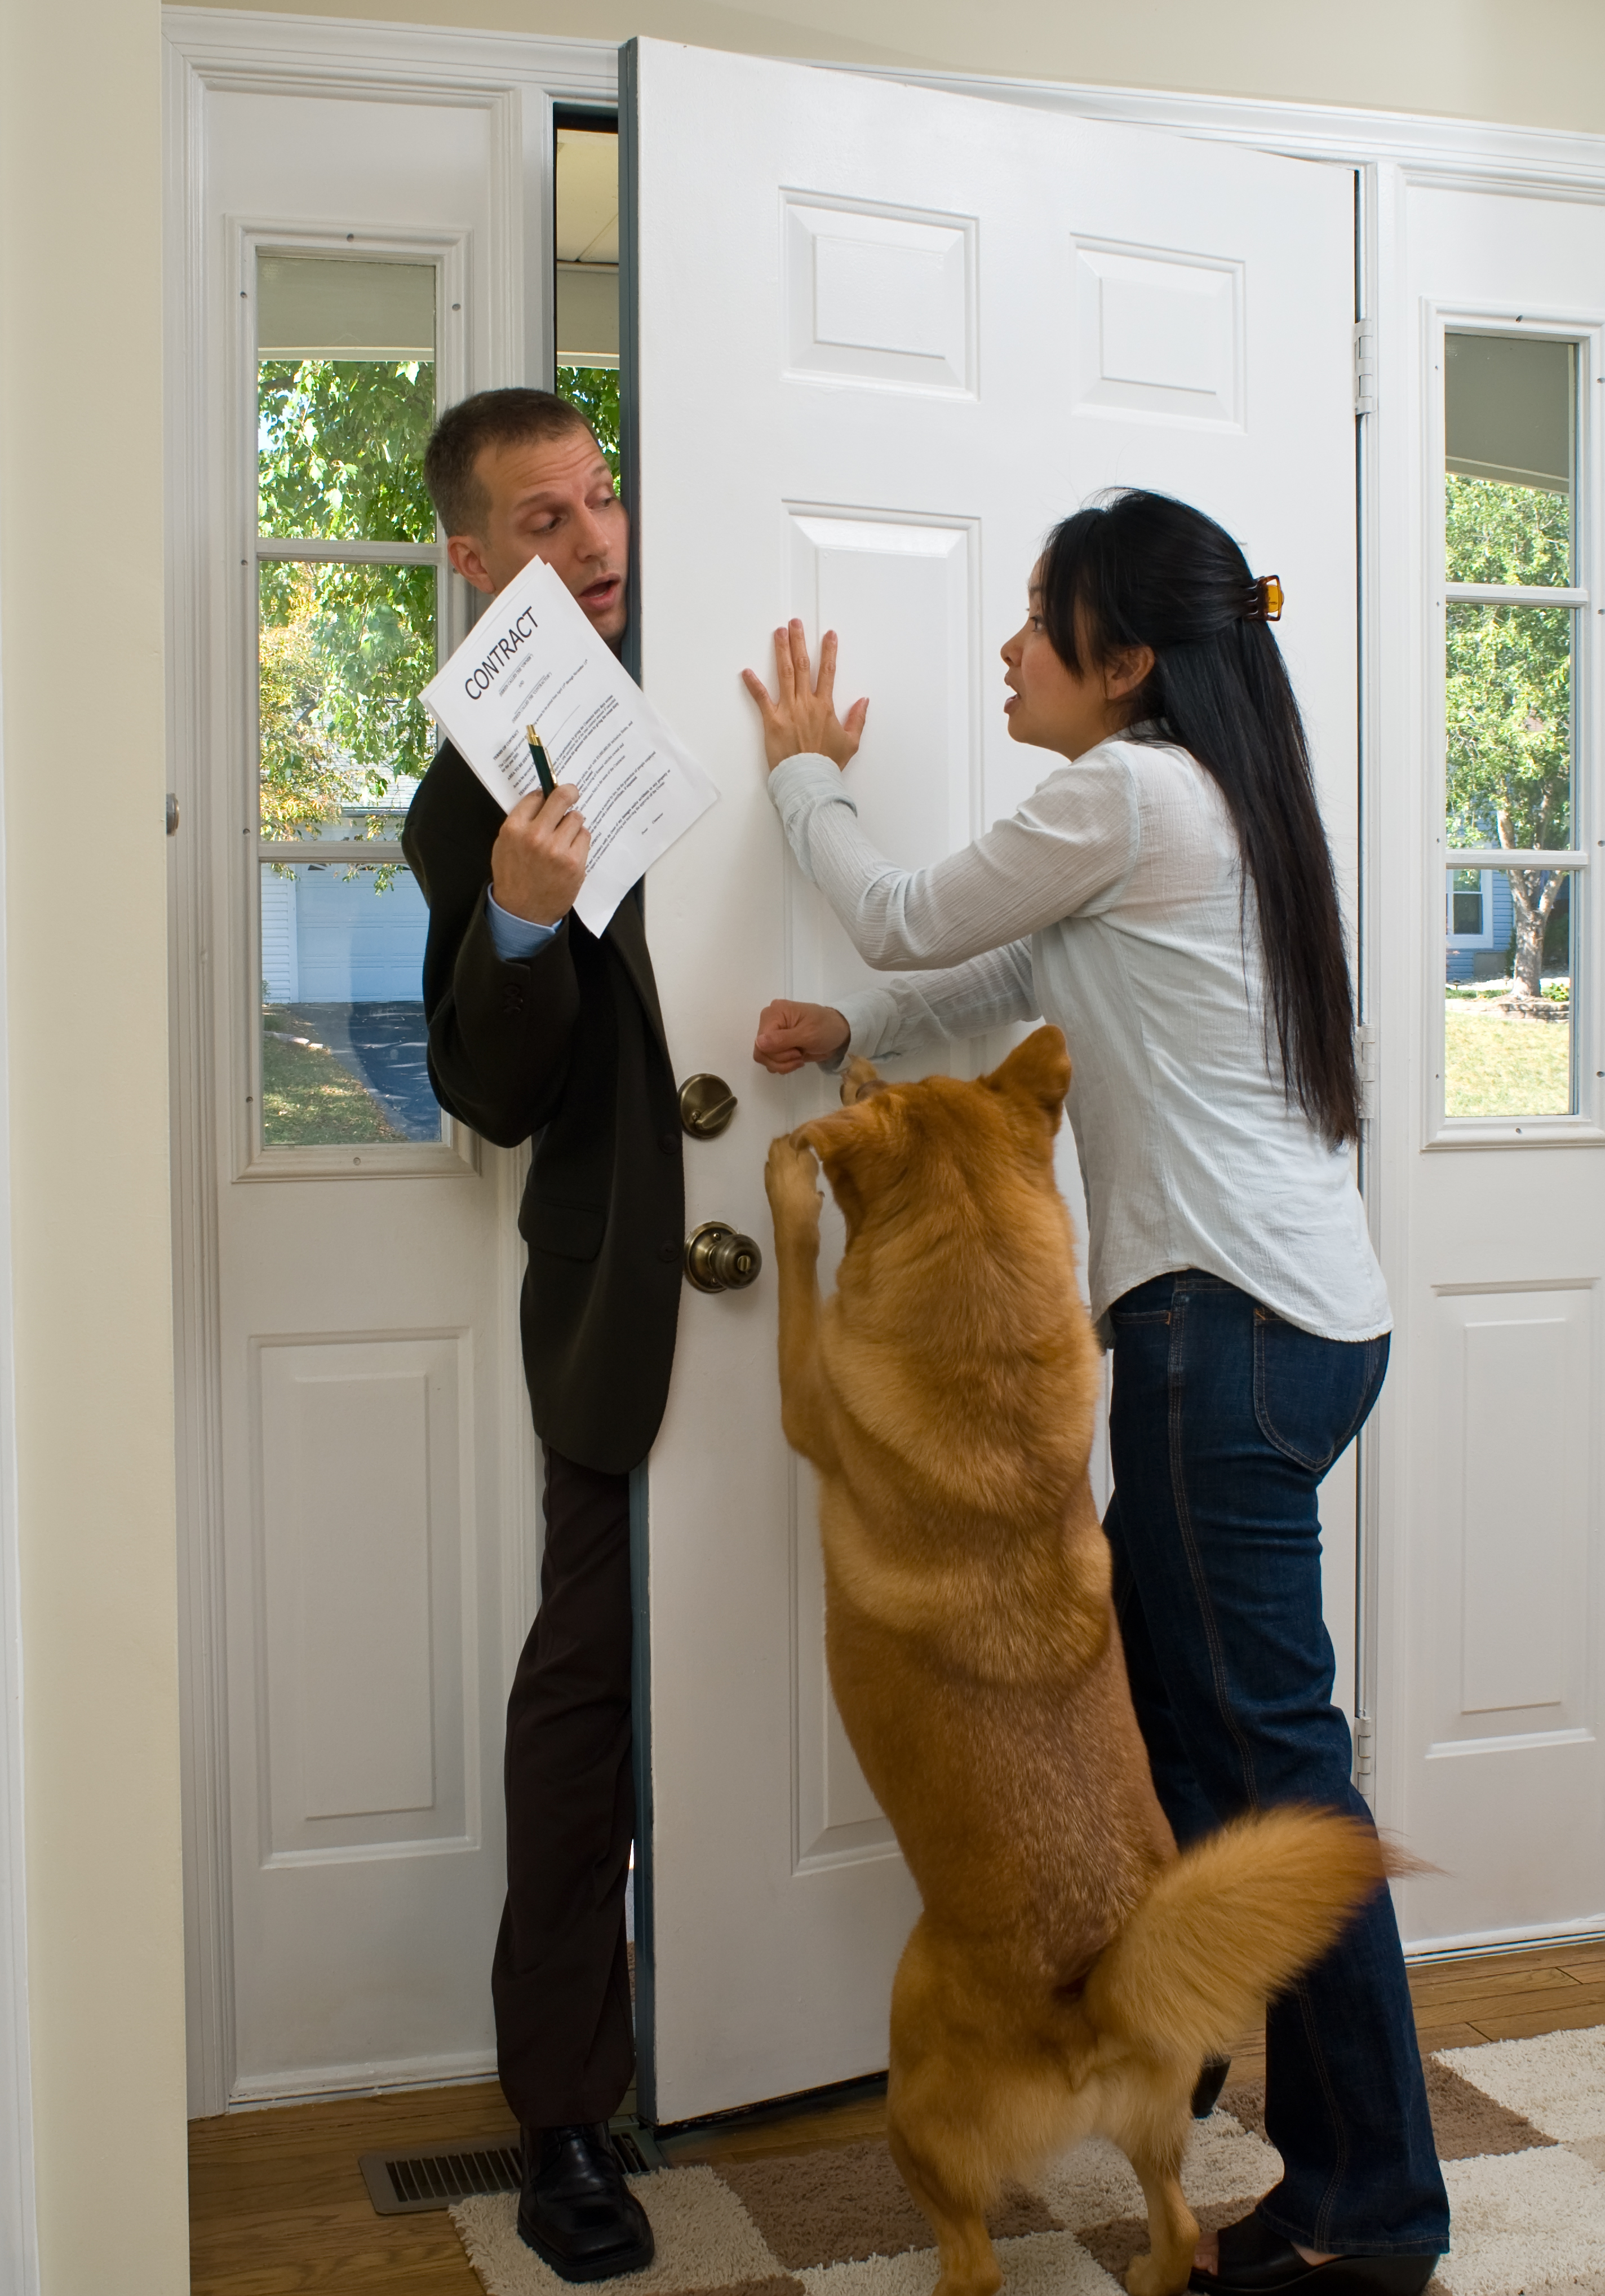 Door-to-door salesman